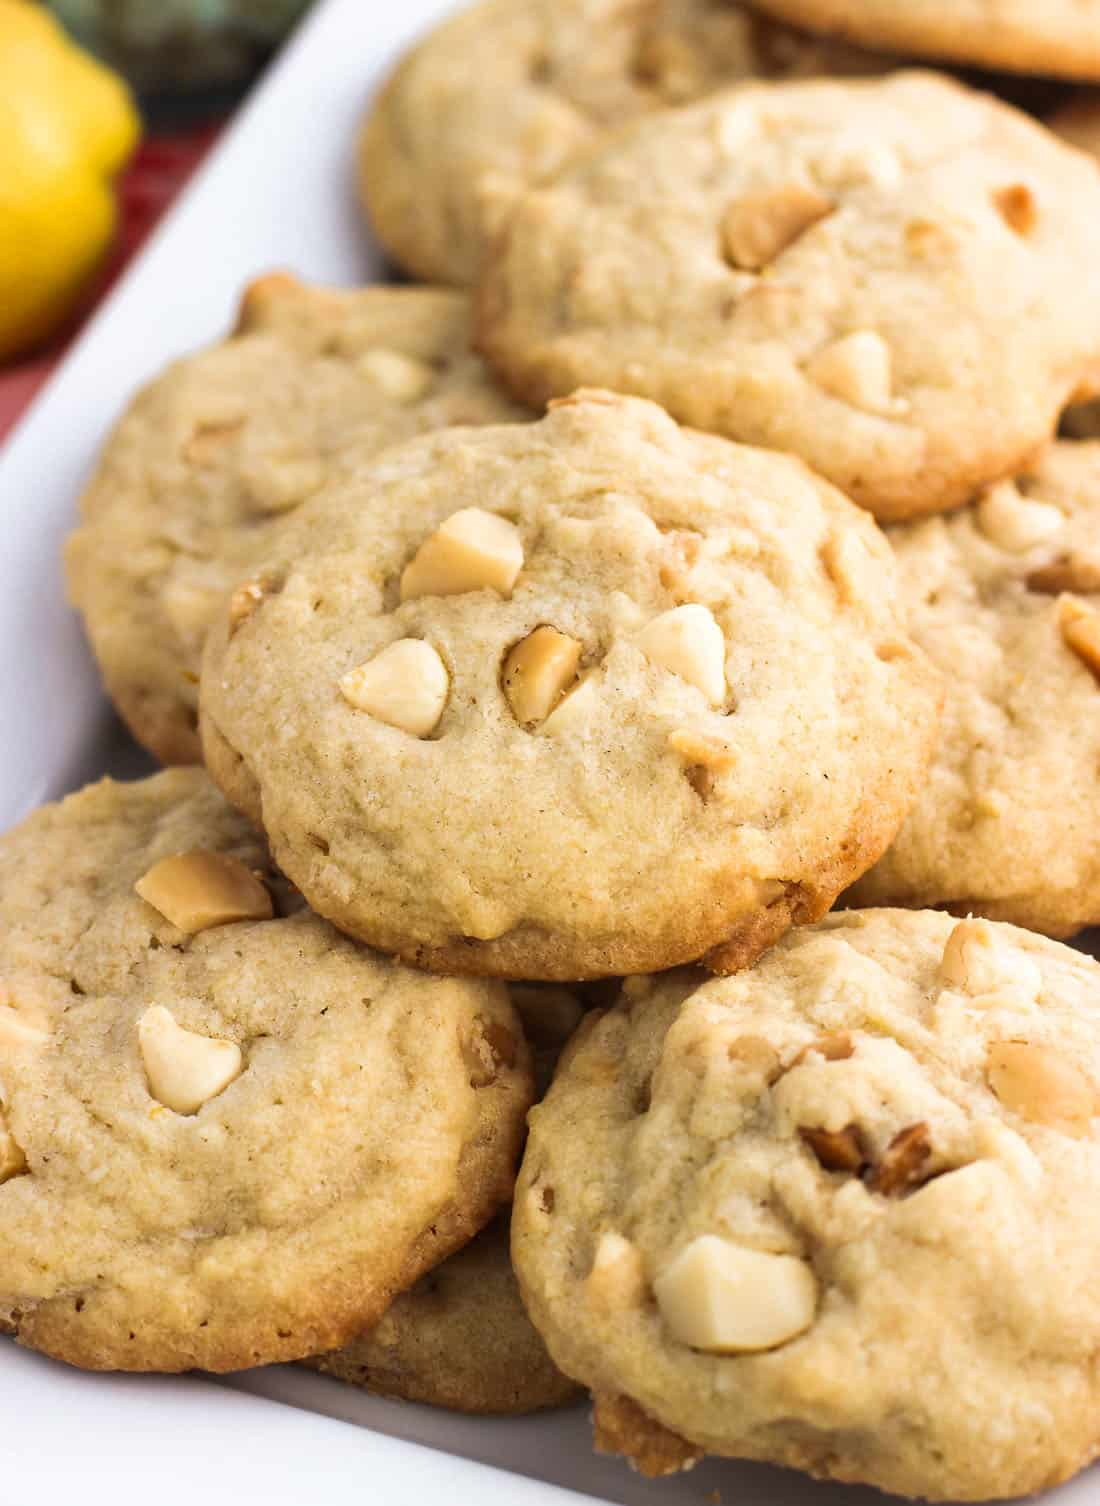 These lemon macadamia nut cookies are ultra chewy with a perfect hint of citrus, toasted macadamia nuts, and white chocolate chips.